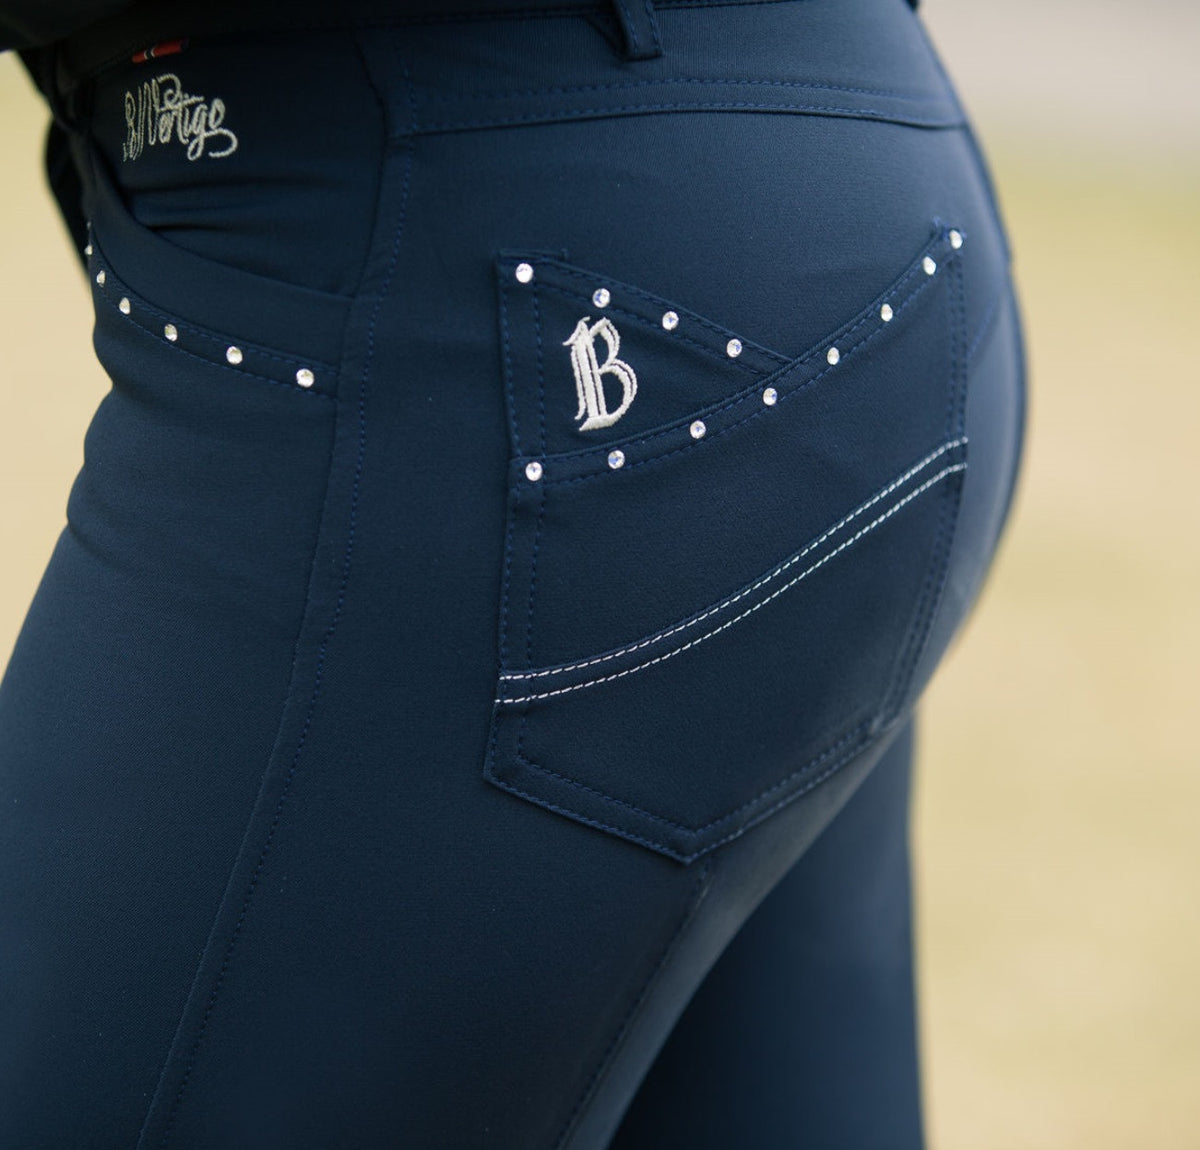 Clearance Breeches Top Hats And Under That